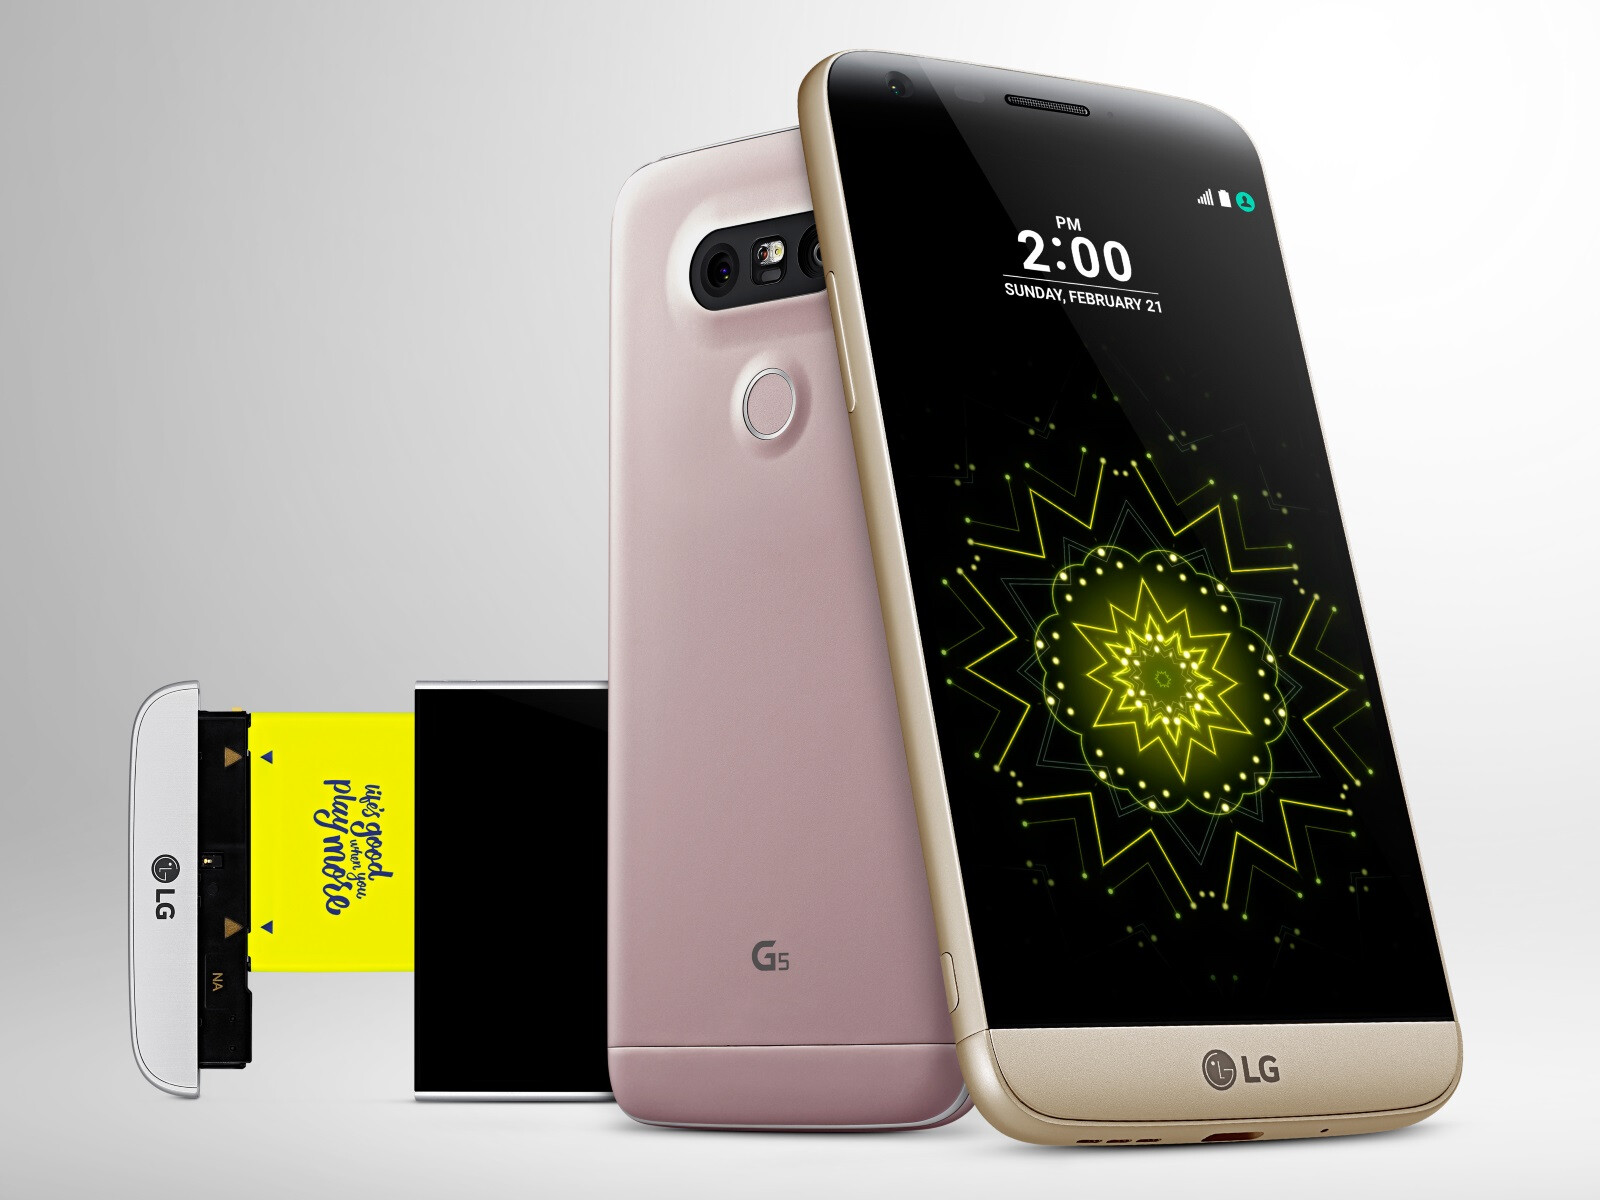 Download All Lg G5 Wallpapers Full Quad Hd Resolution Here